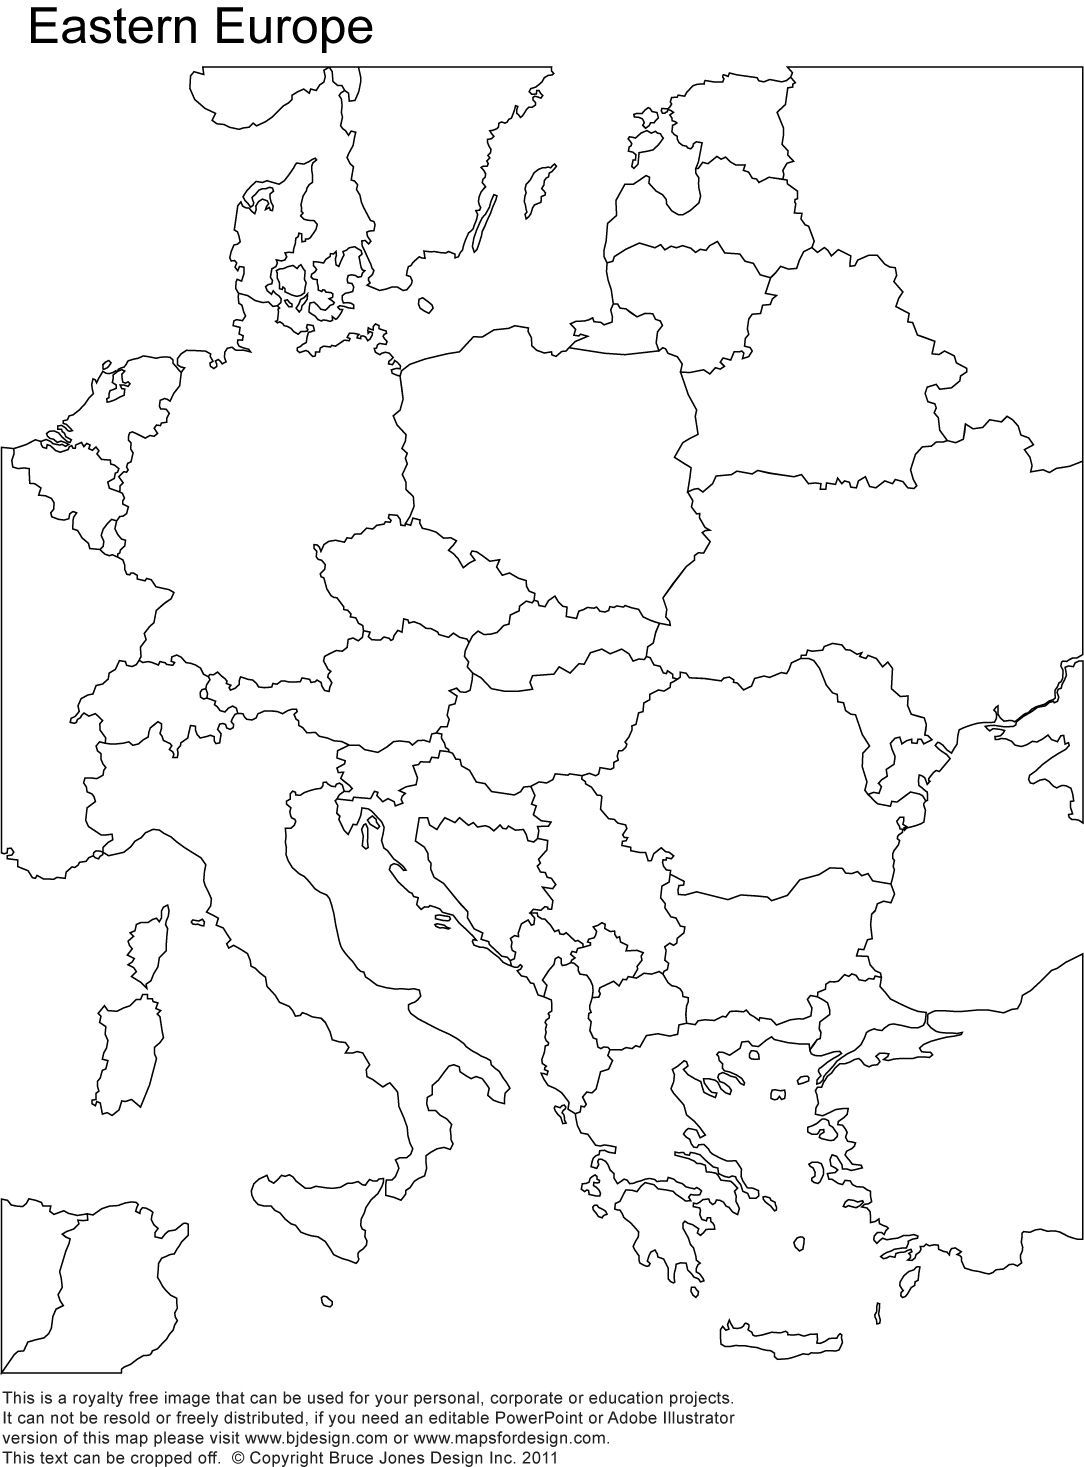 Eastern Europe Printable Blank Map, Royalty Free, Country Borders - Printable Puzzle Map Of Europe